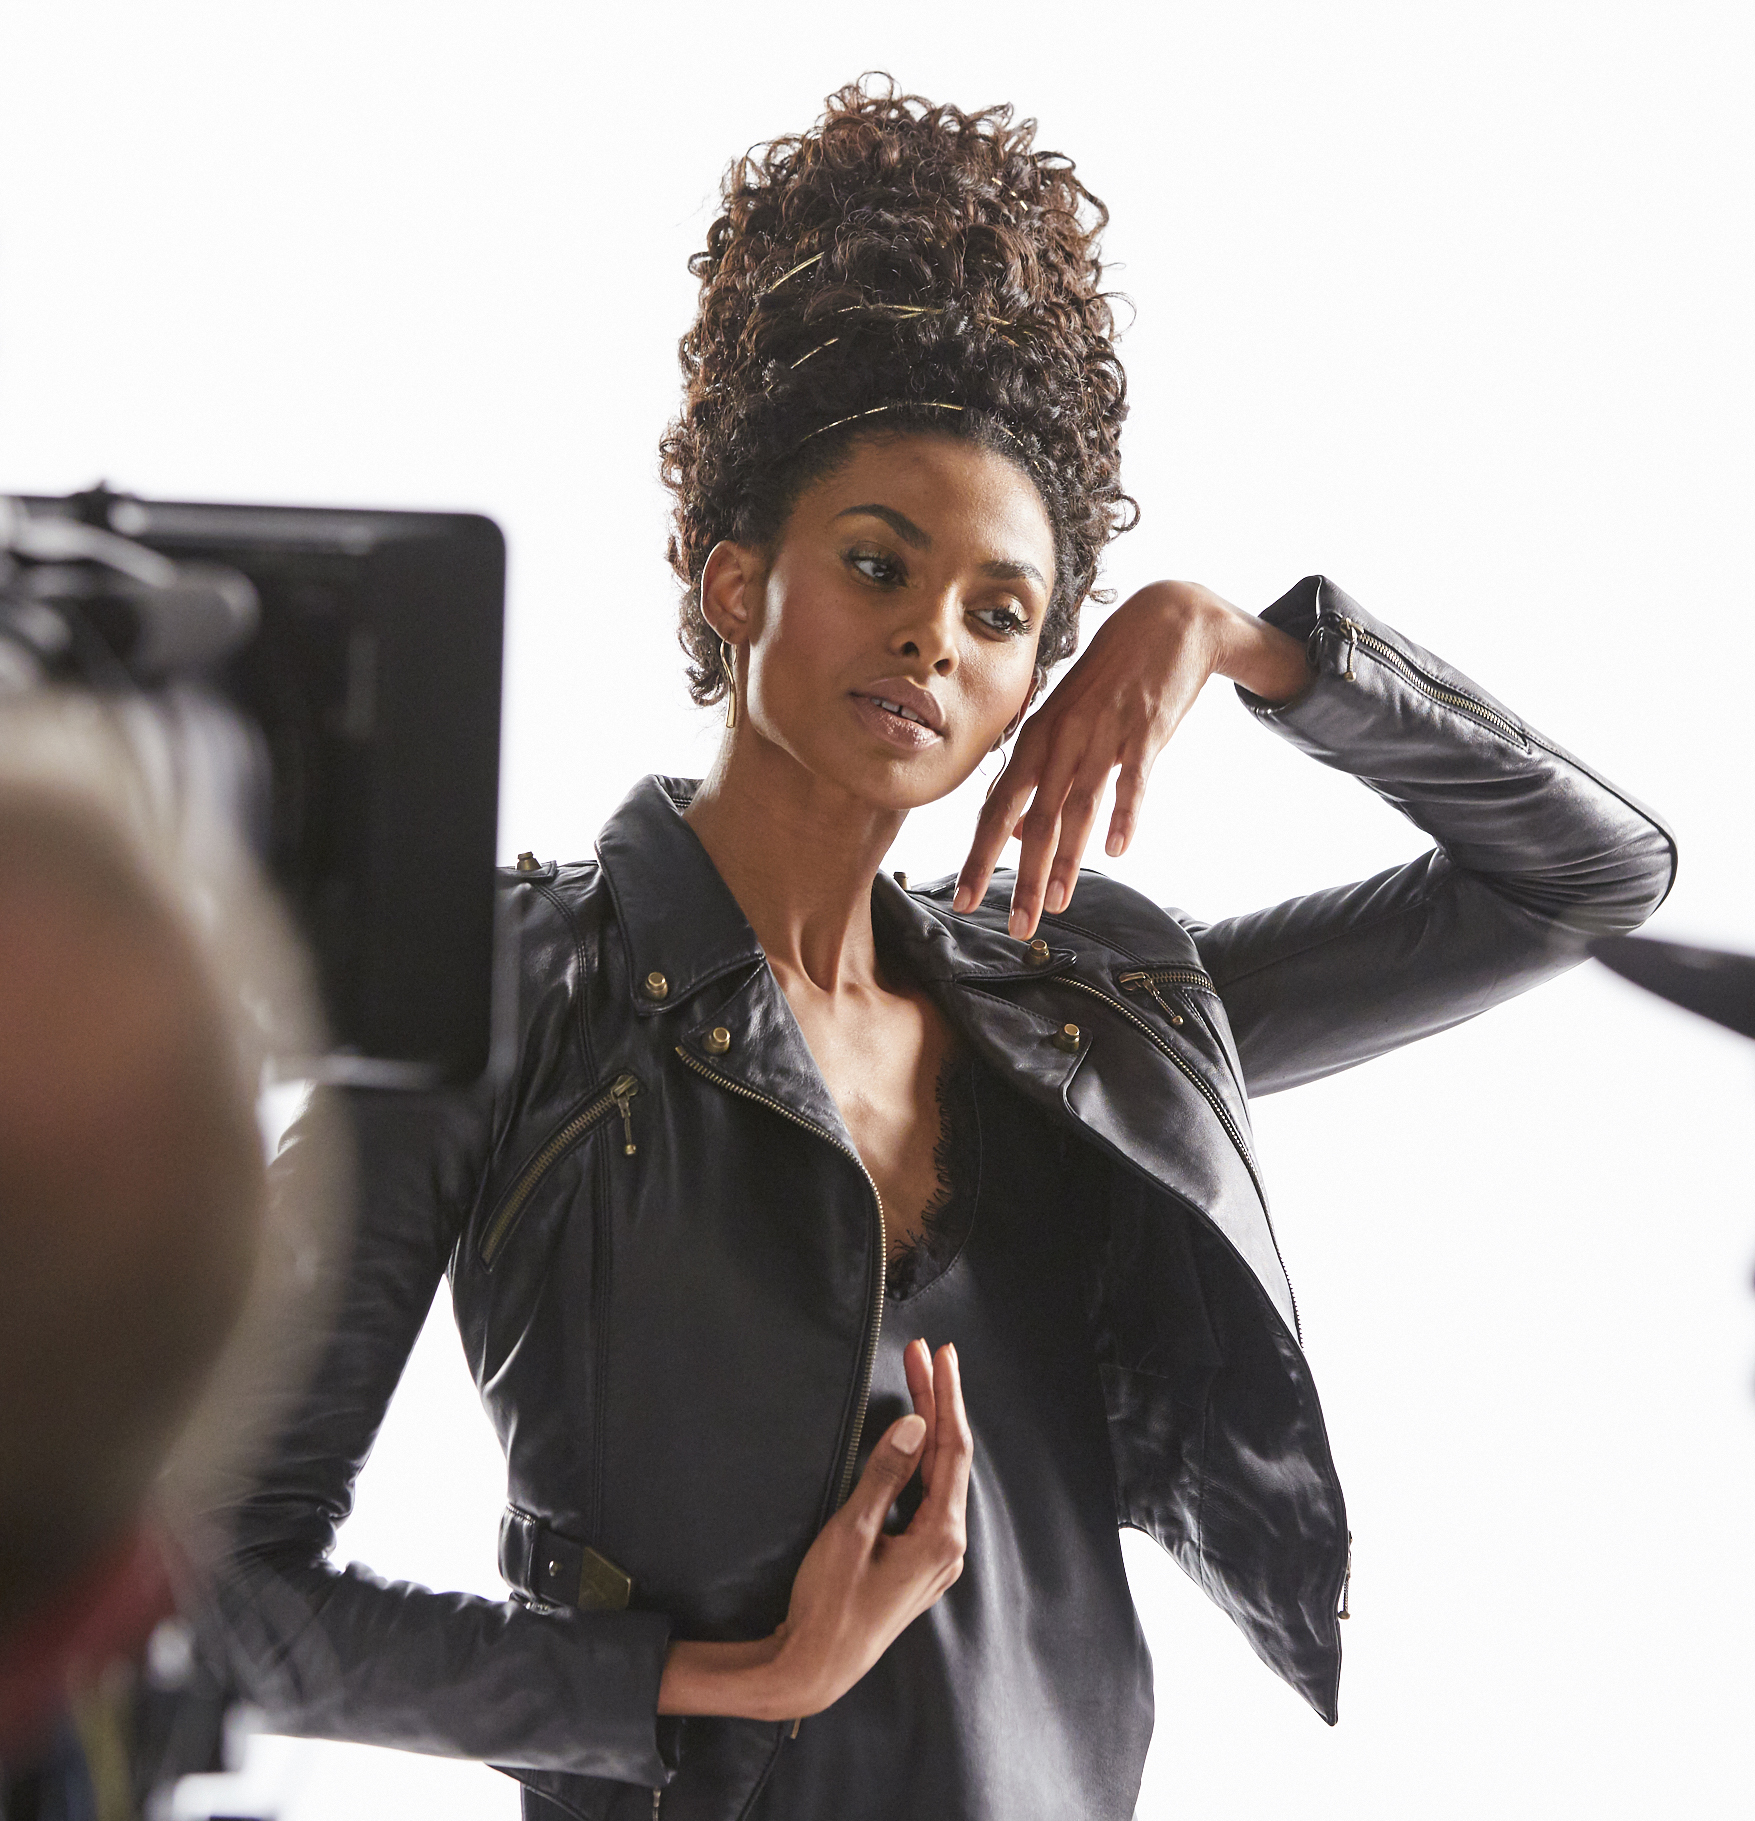 Behind-the-scenes at the shoot of Pantene's newest TV ad campaign, which celebrates the heritage, diversity and beauty of African American hair, proving that all strong hair is beautiful. (Photo: Business Wire)